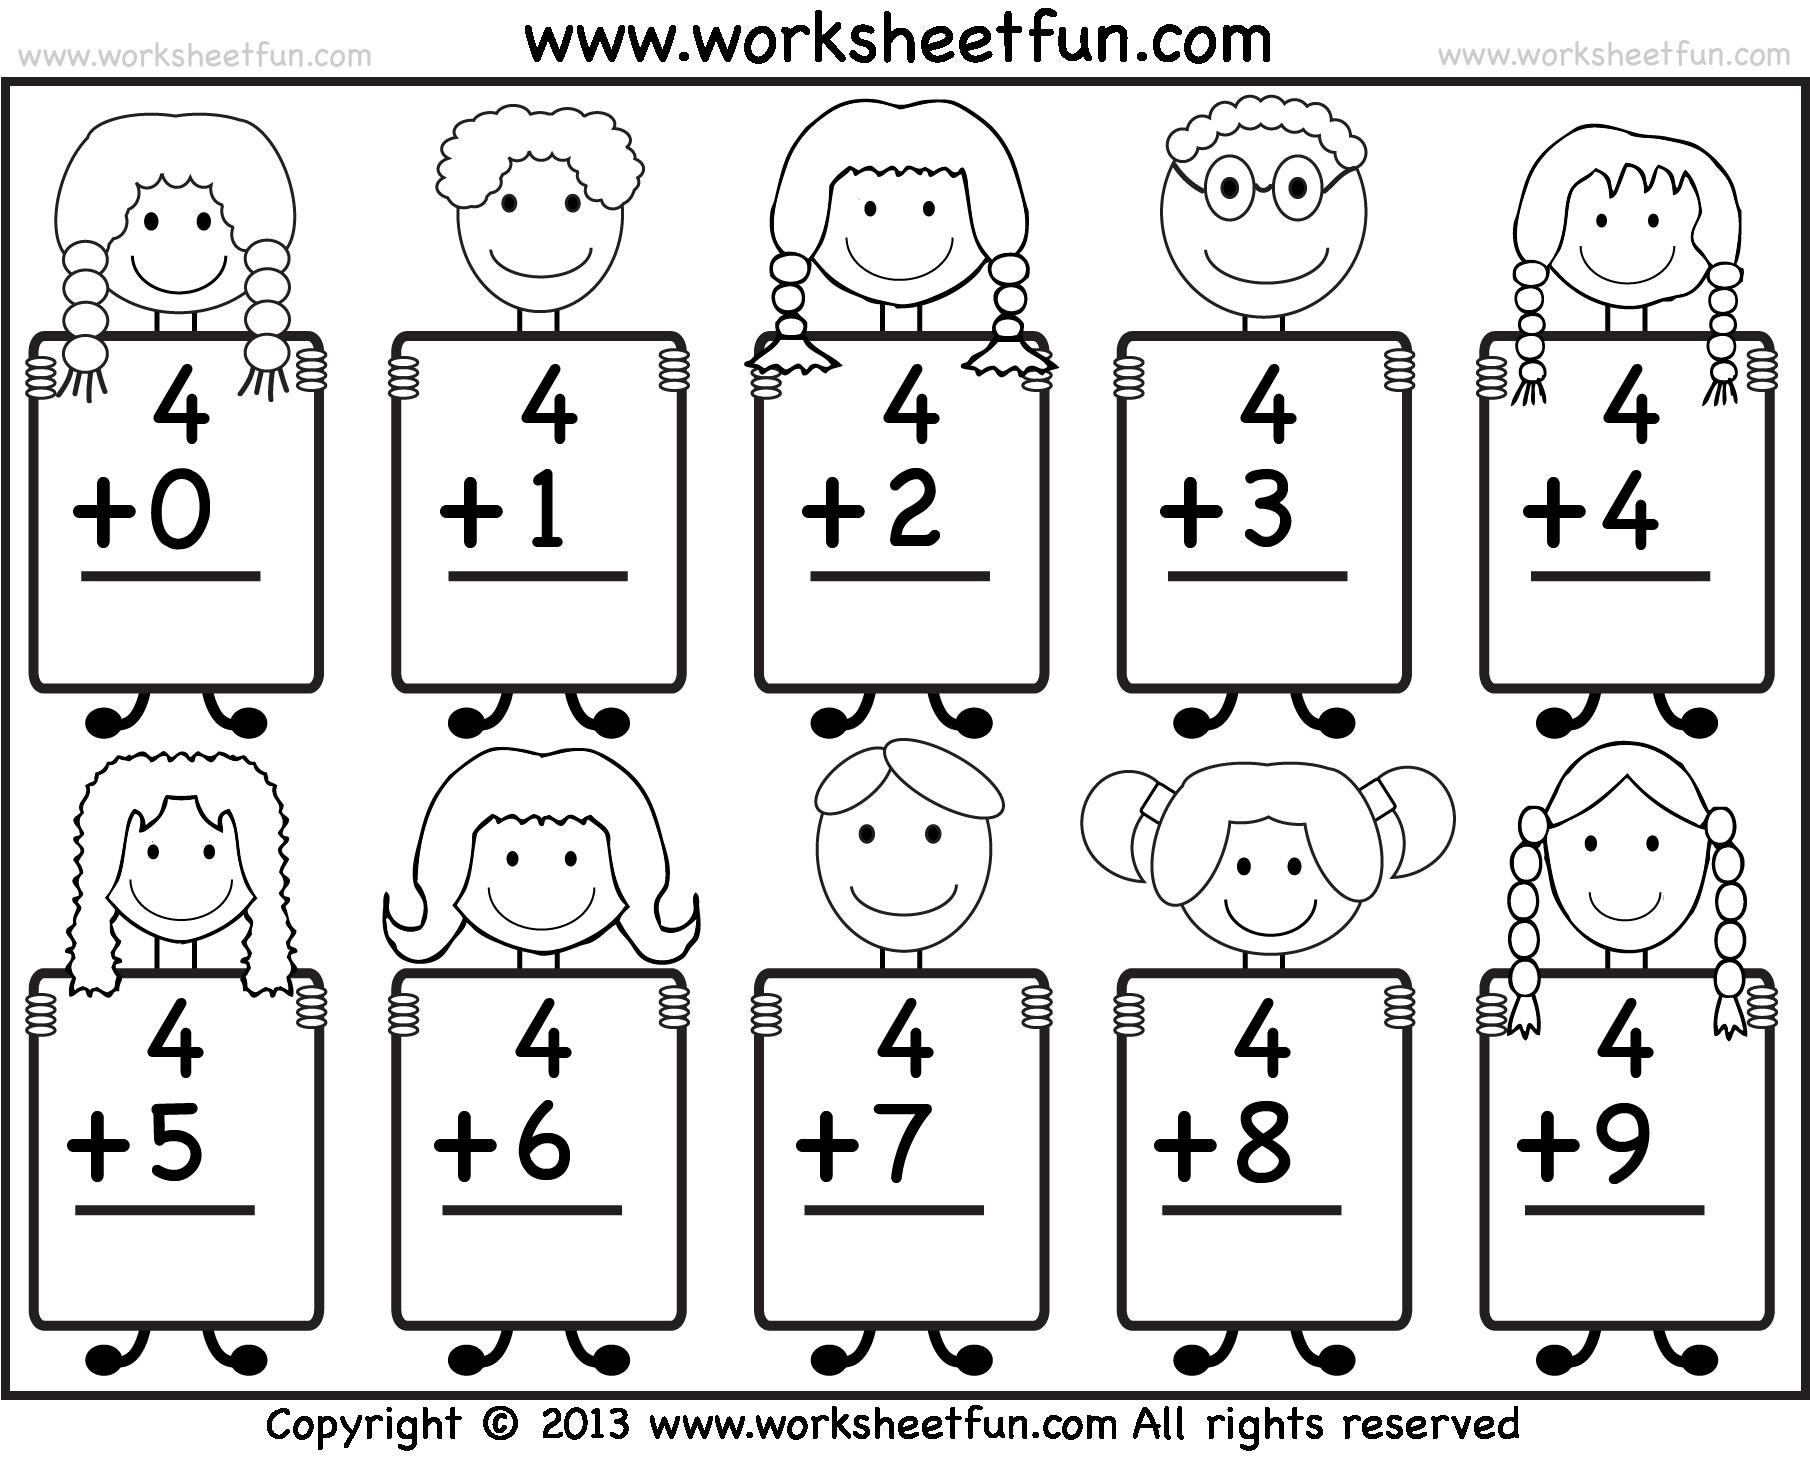 freeprintablemathworksheetsforkindergartenaddition1png – Free Math Worksheets Addition